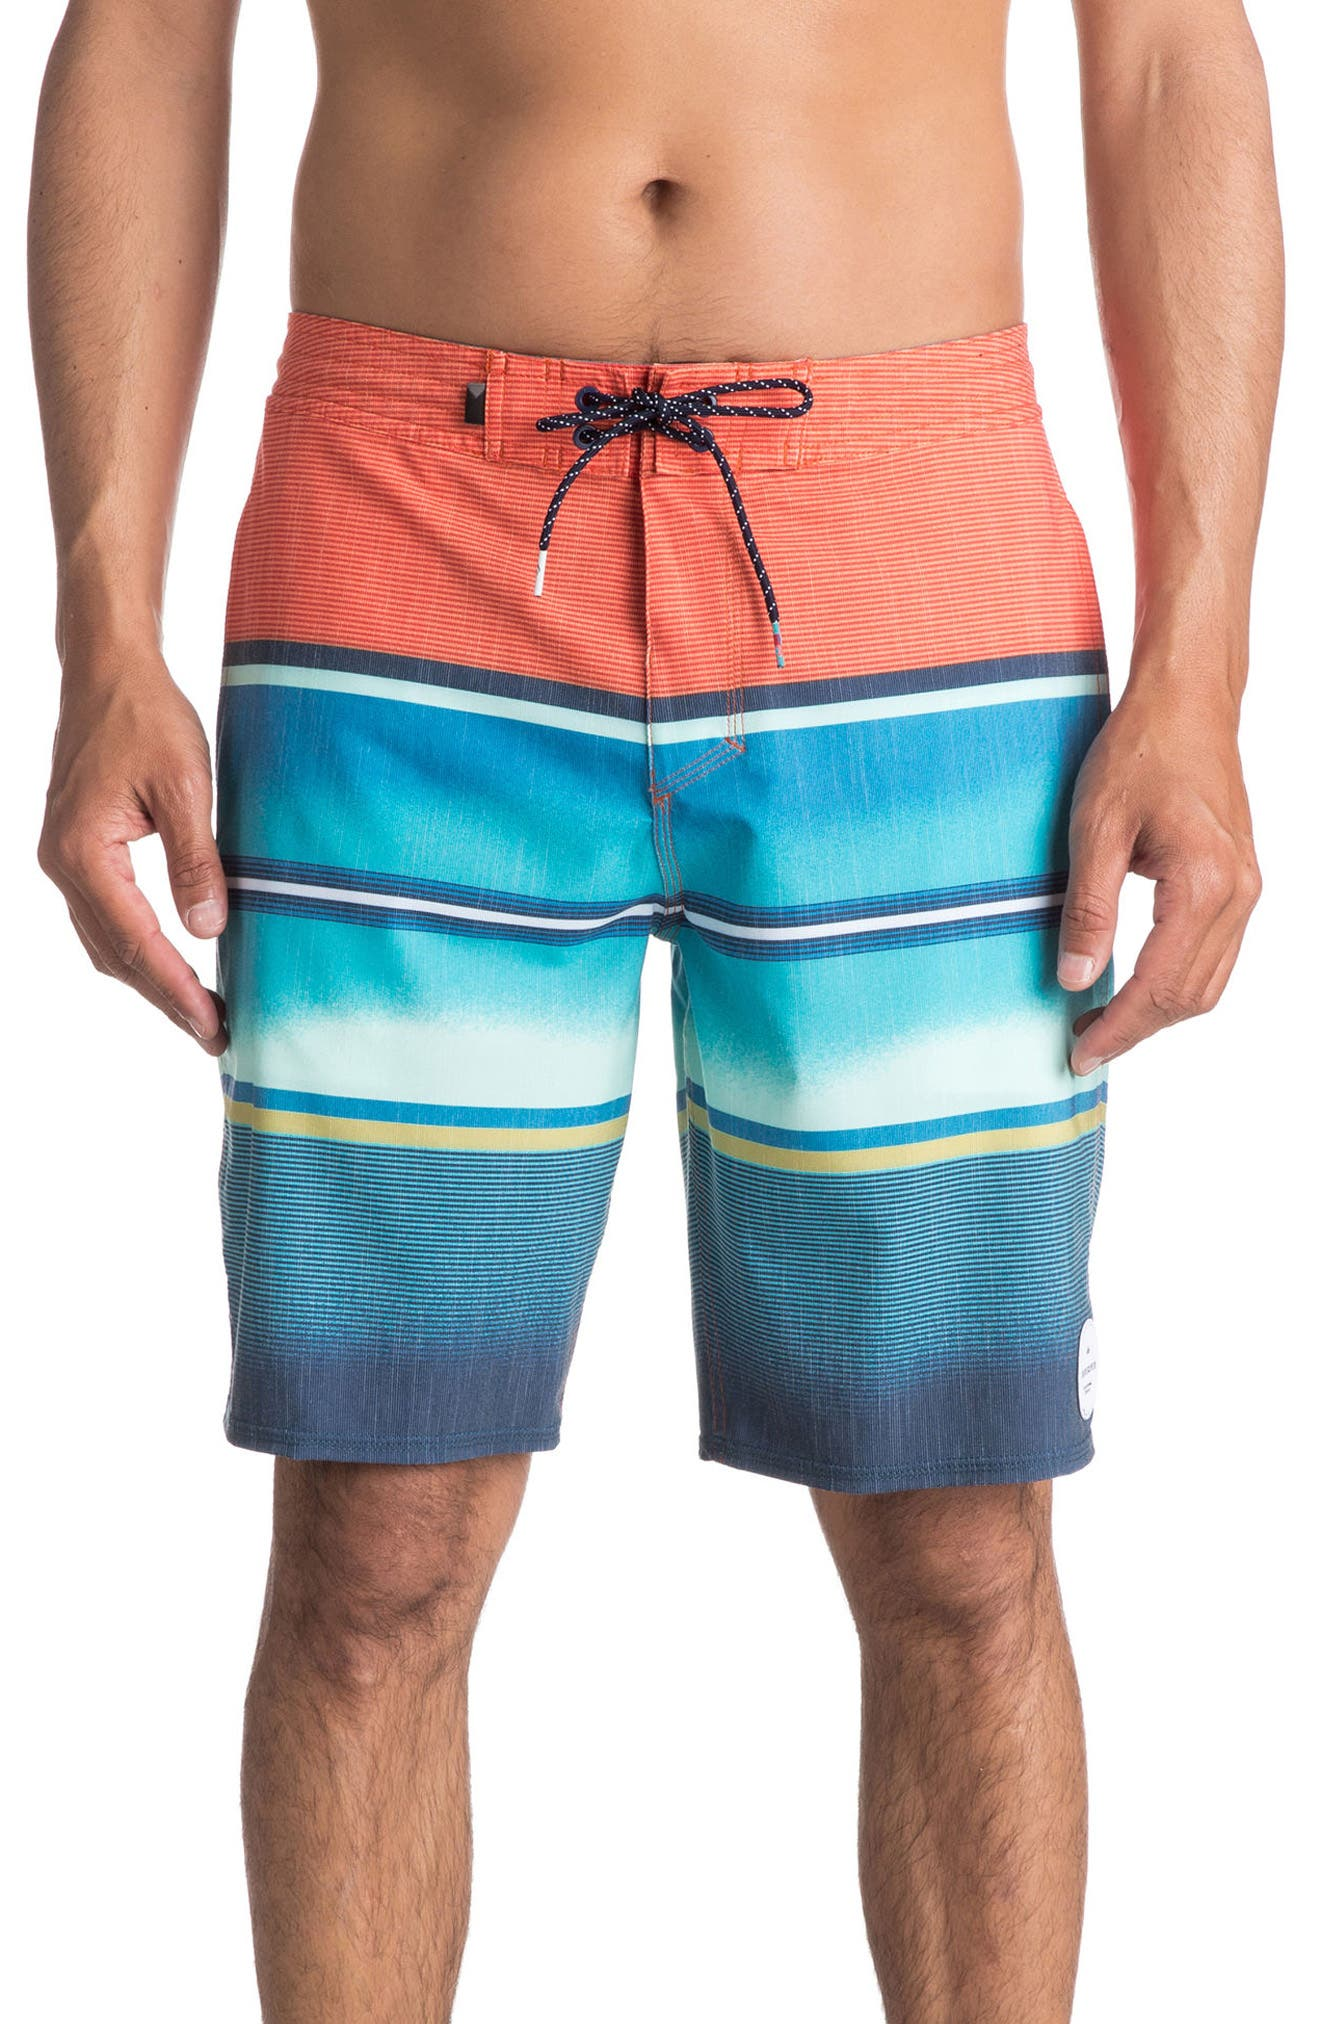 Swell Vision Board Shorts,                         Main,                         color, Coral Rose